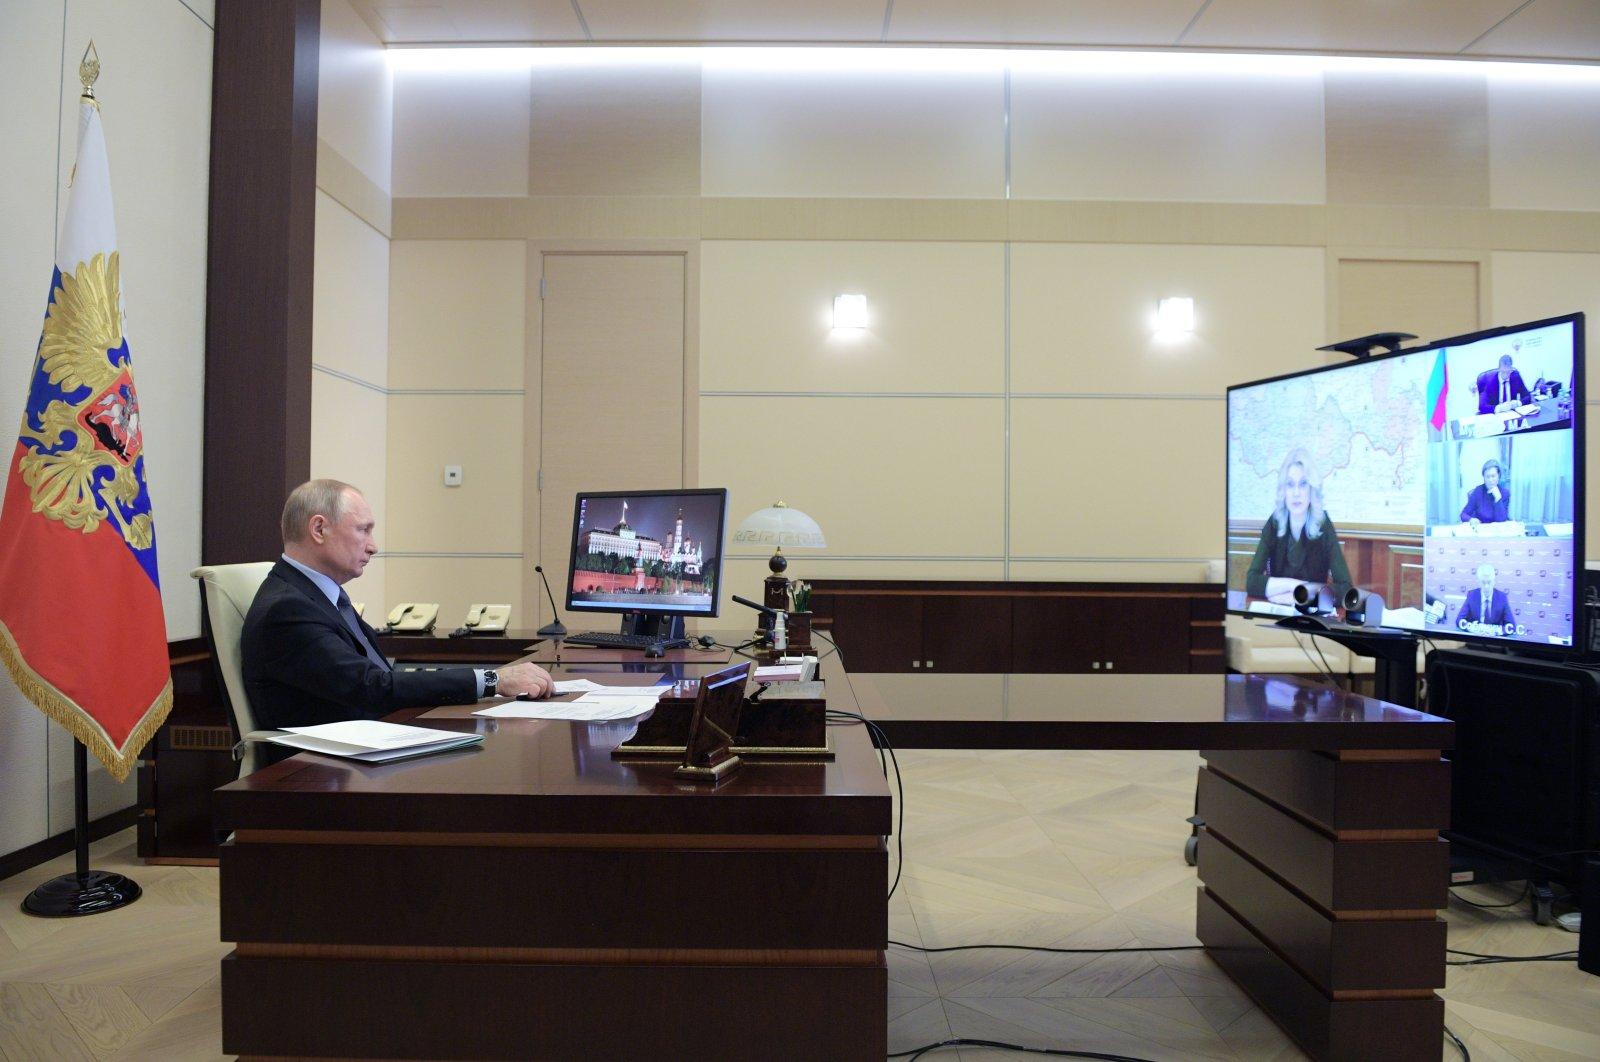 Russian President Vladimir Putin, attends a video conference at the Novo-Ogaryovo residence outside Moscow, Russia, Monday, April 13, 2020. (AP Photo)